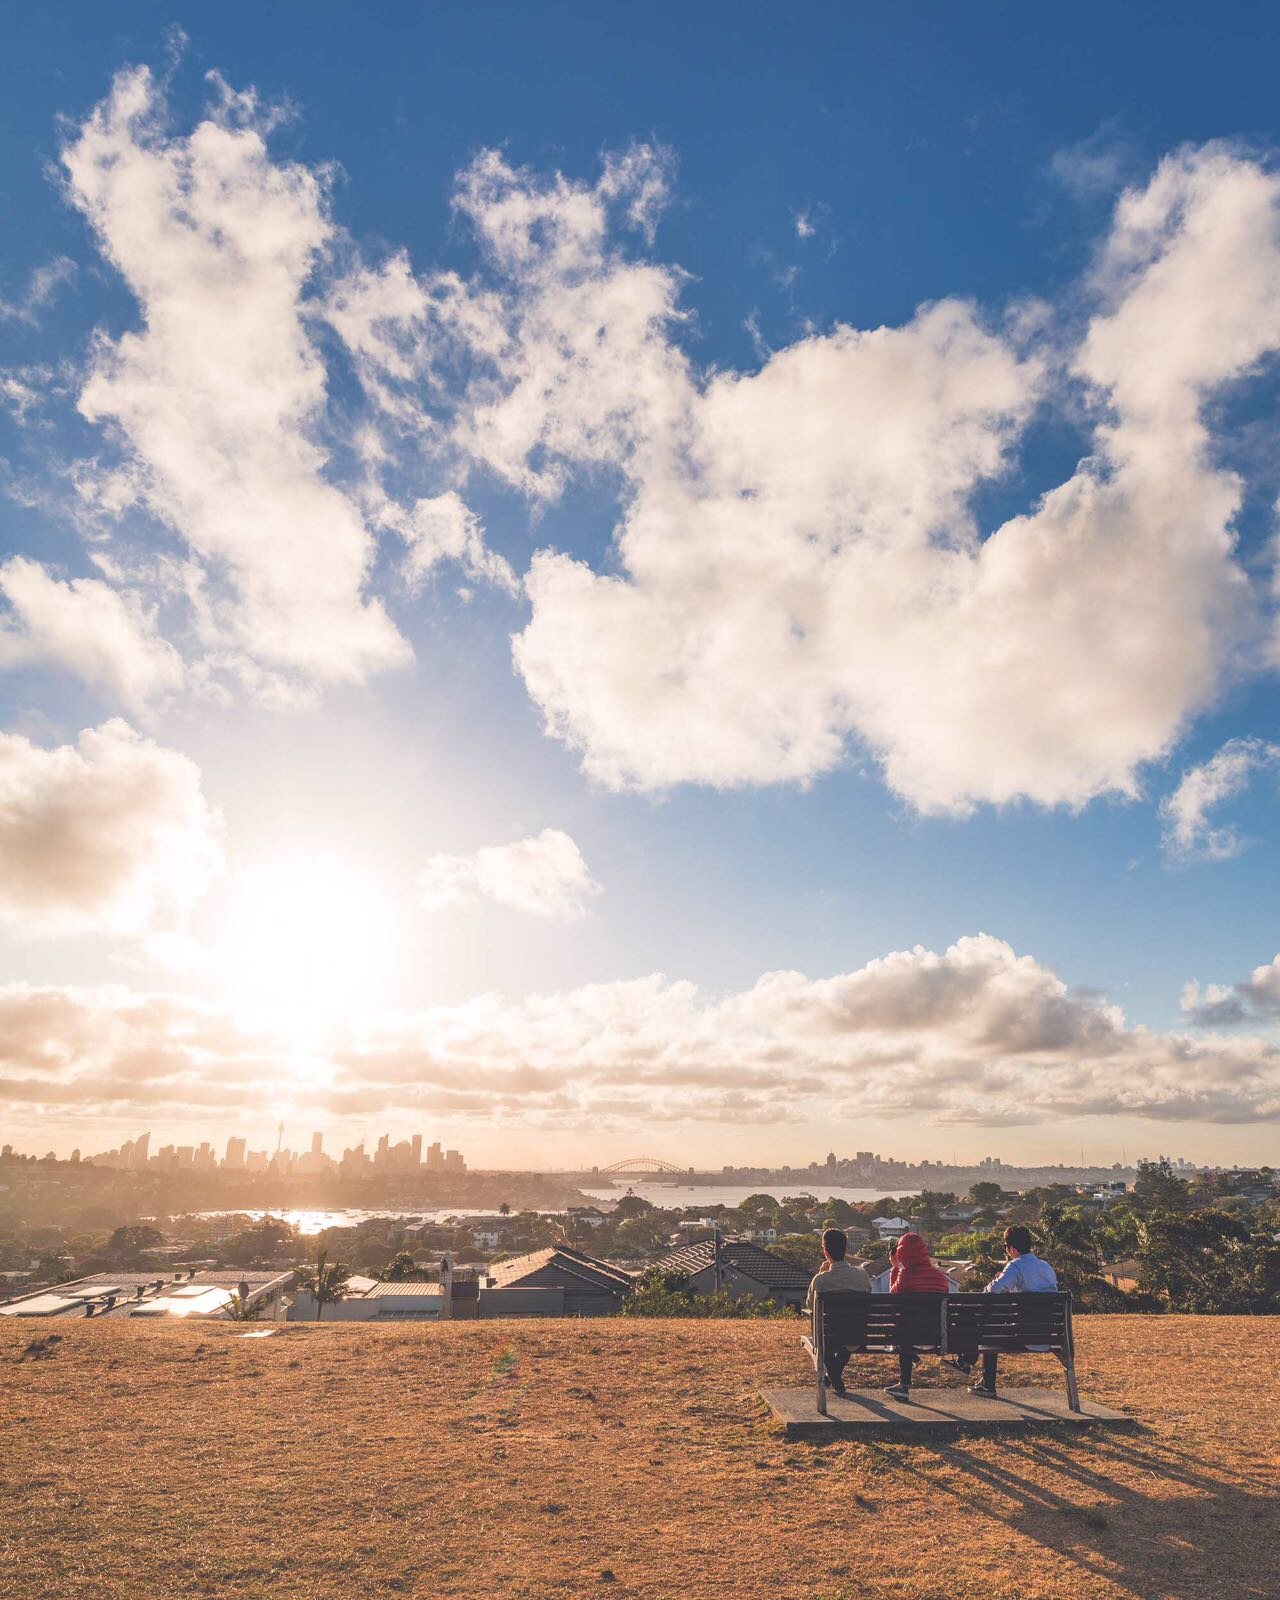 Instagrammable Spots Sydney: Dudley Page Reserve, Dover Heights